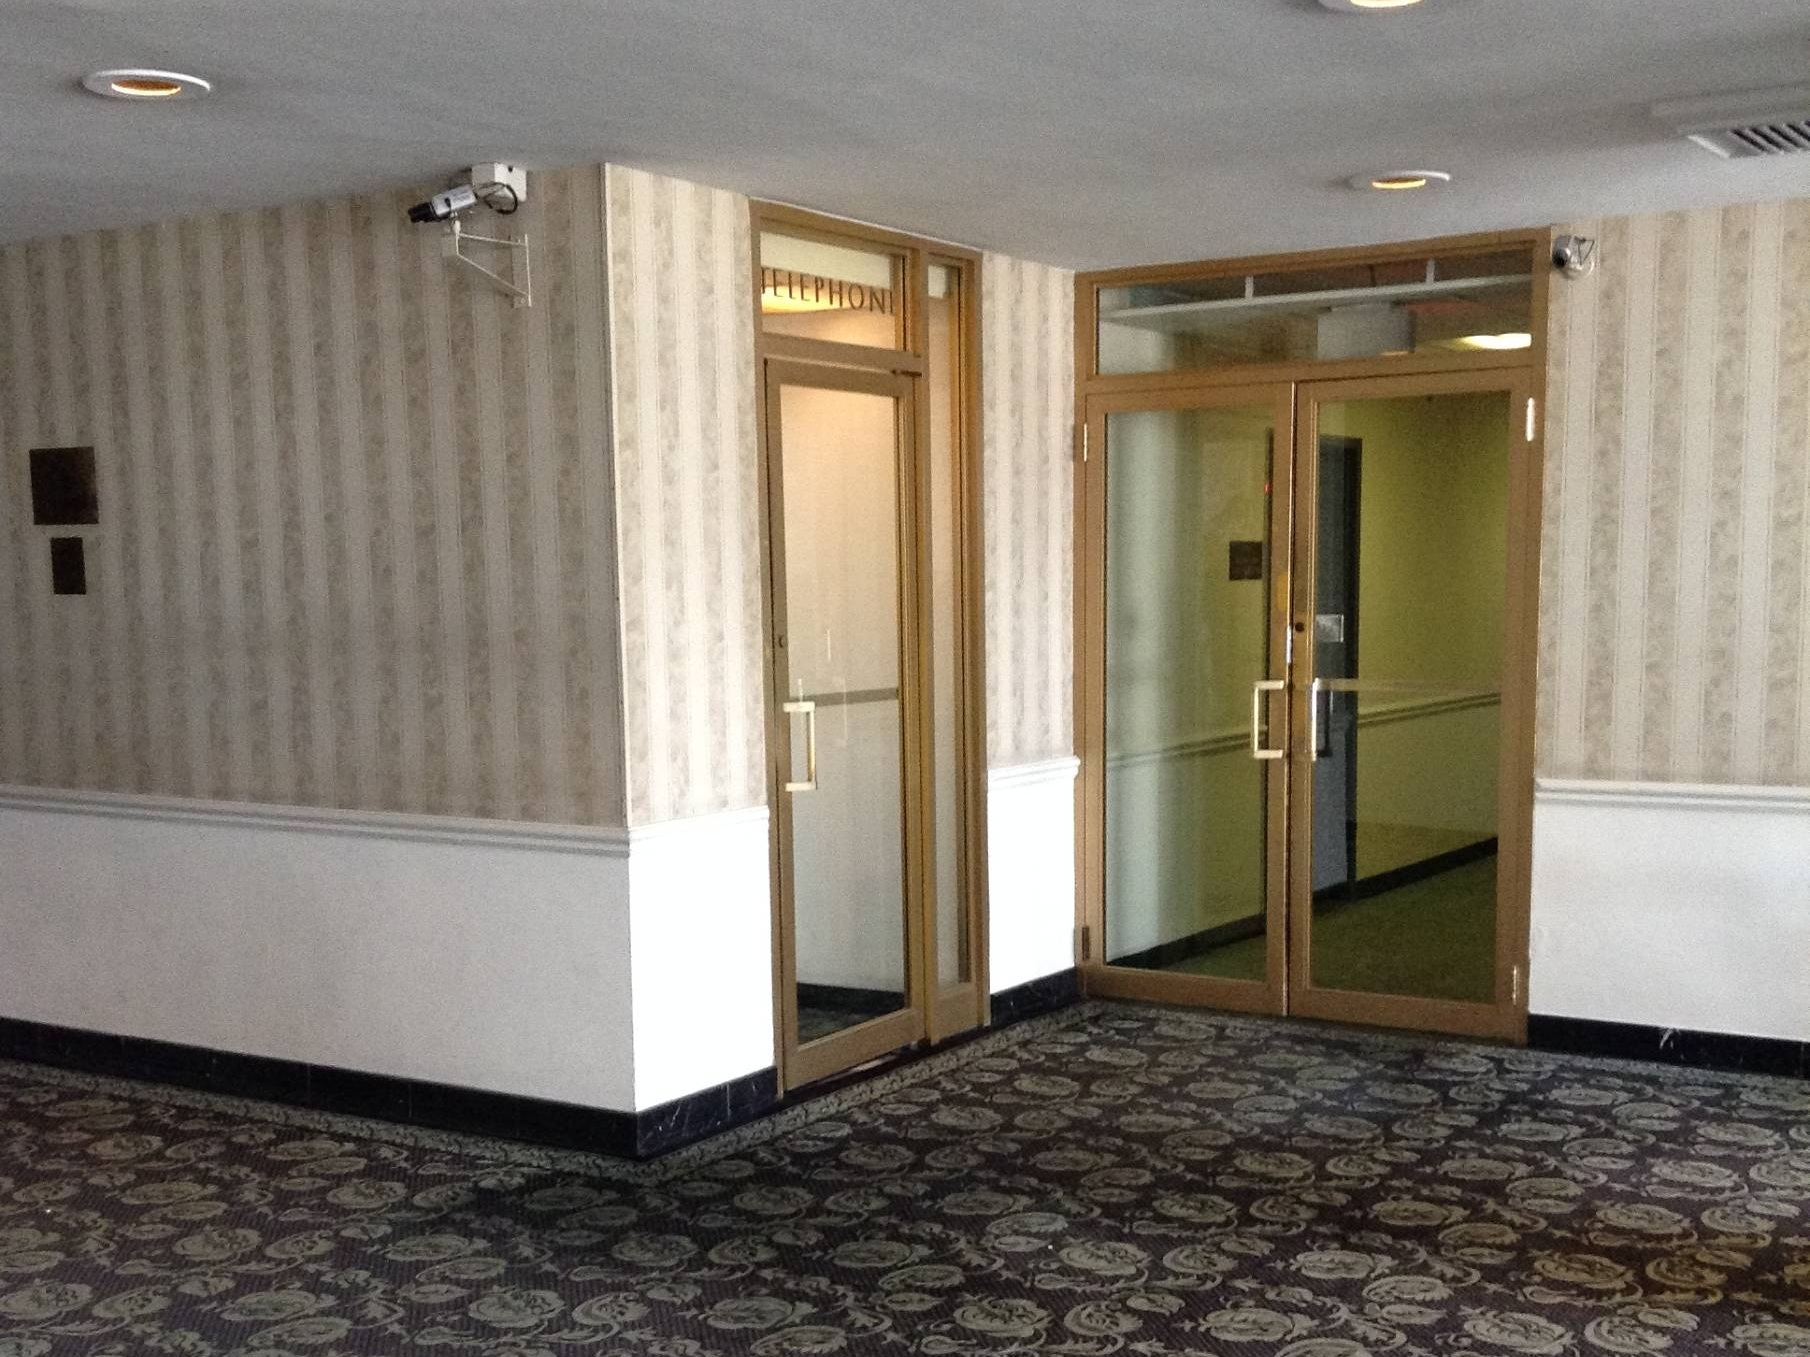 Before  - The lobby looked dated and dark.